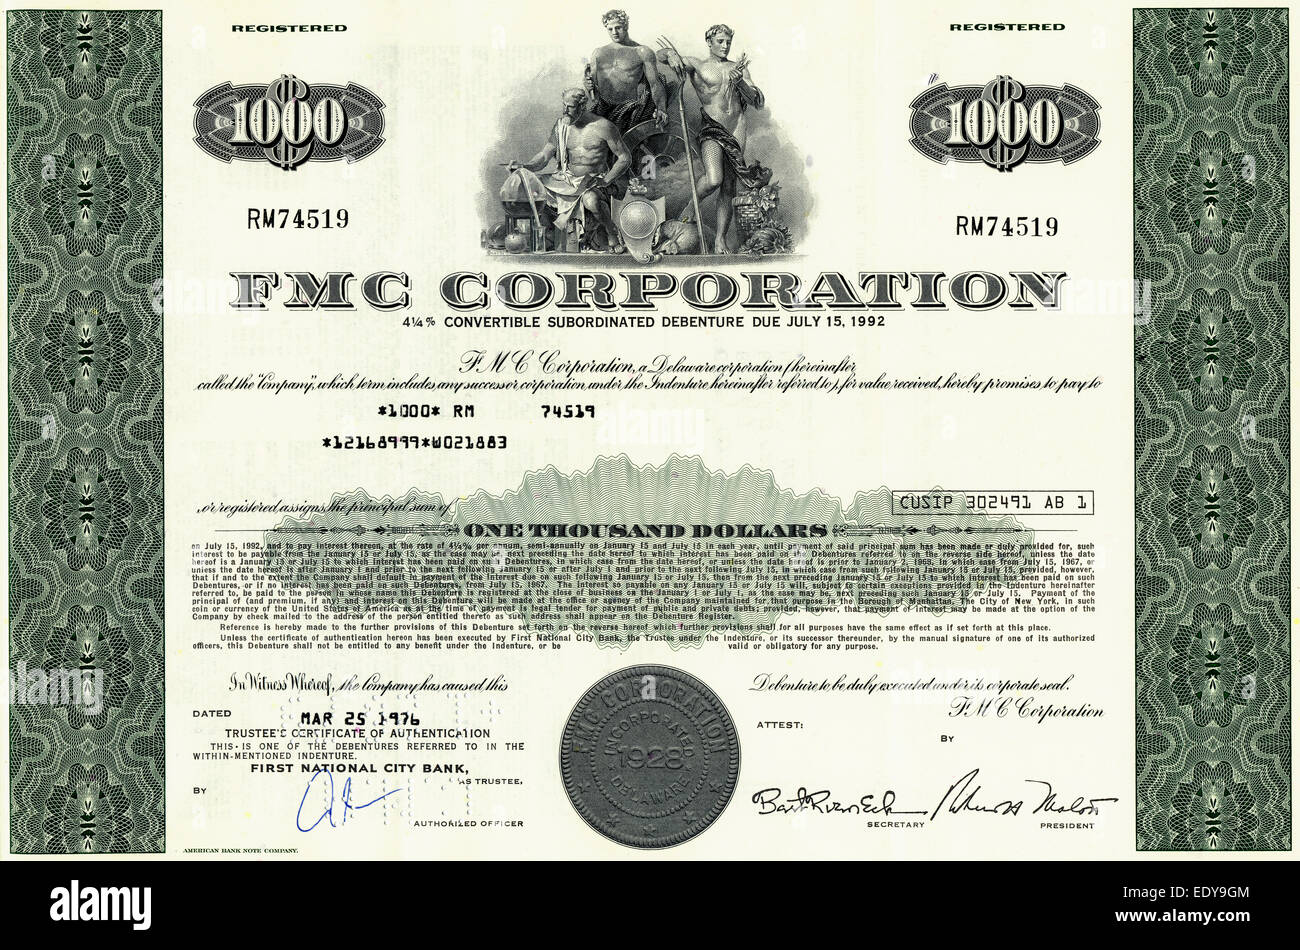 Historic share certificate, FMC Corporation, 1976, New York, USA - Stock Image